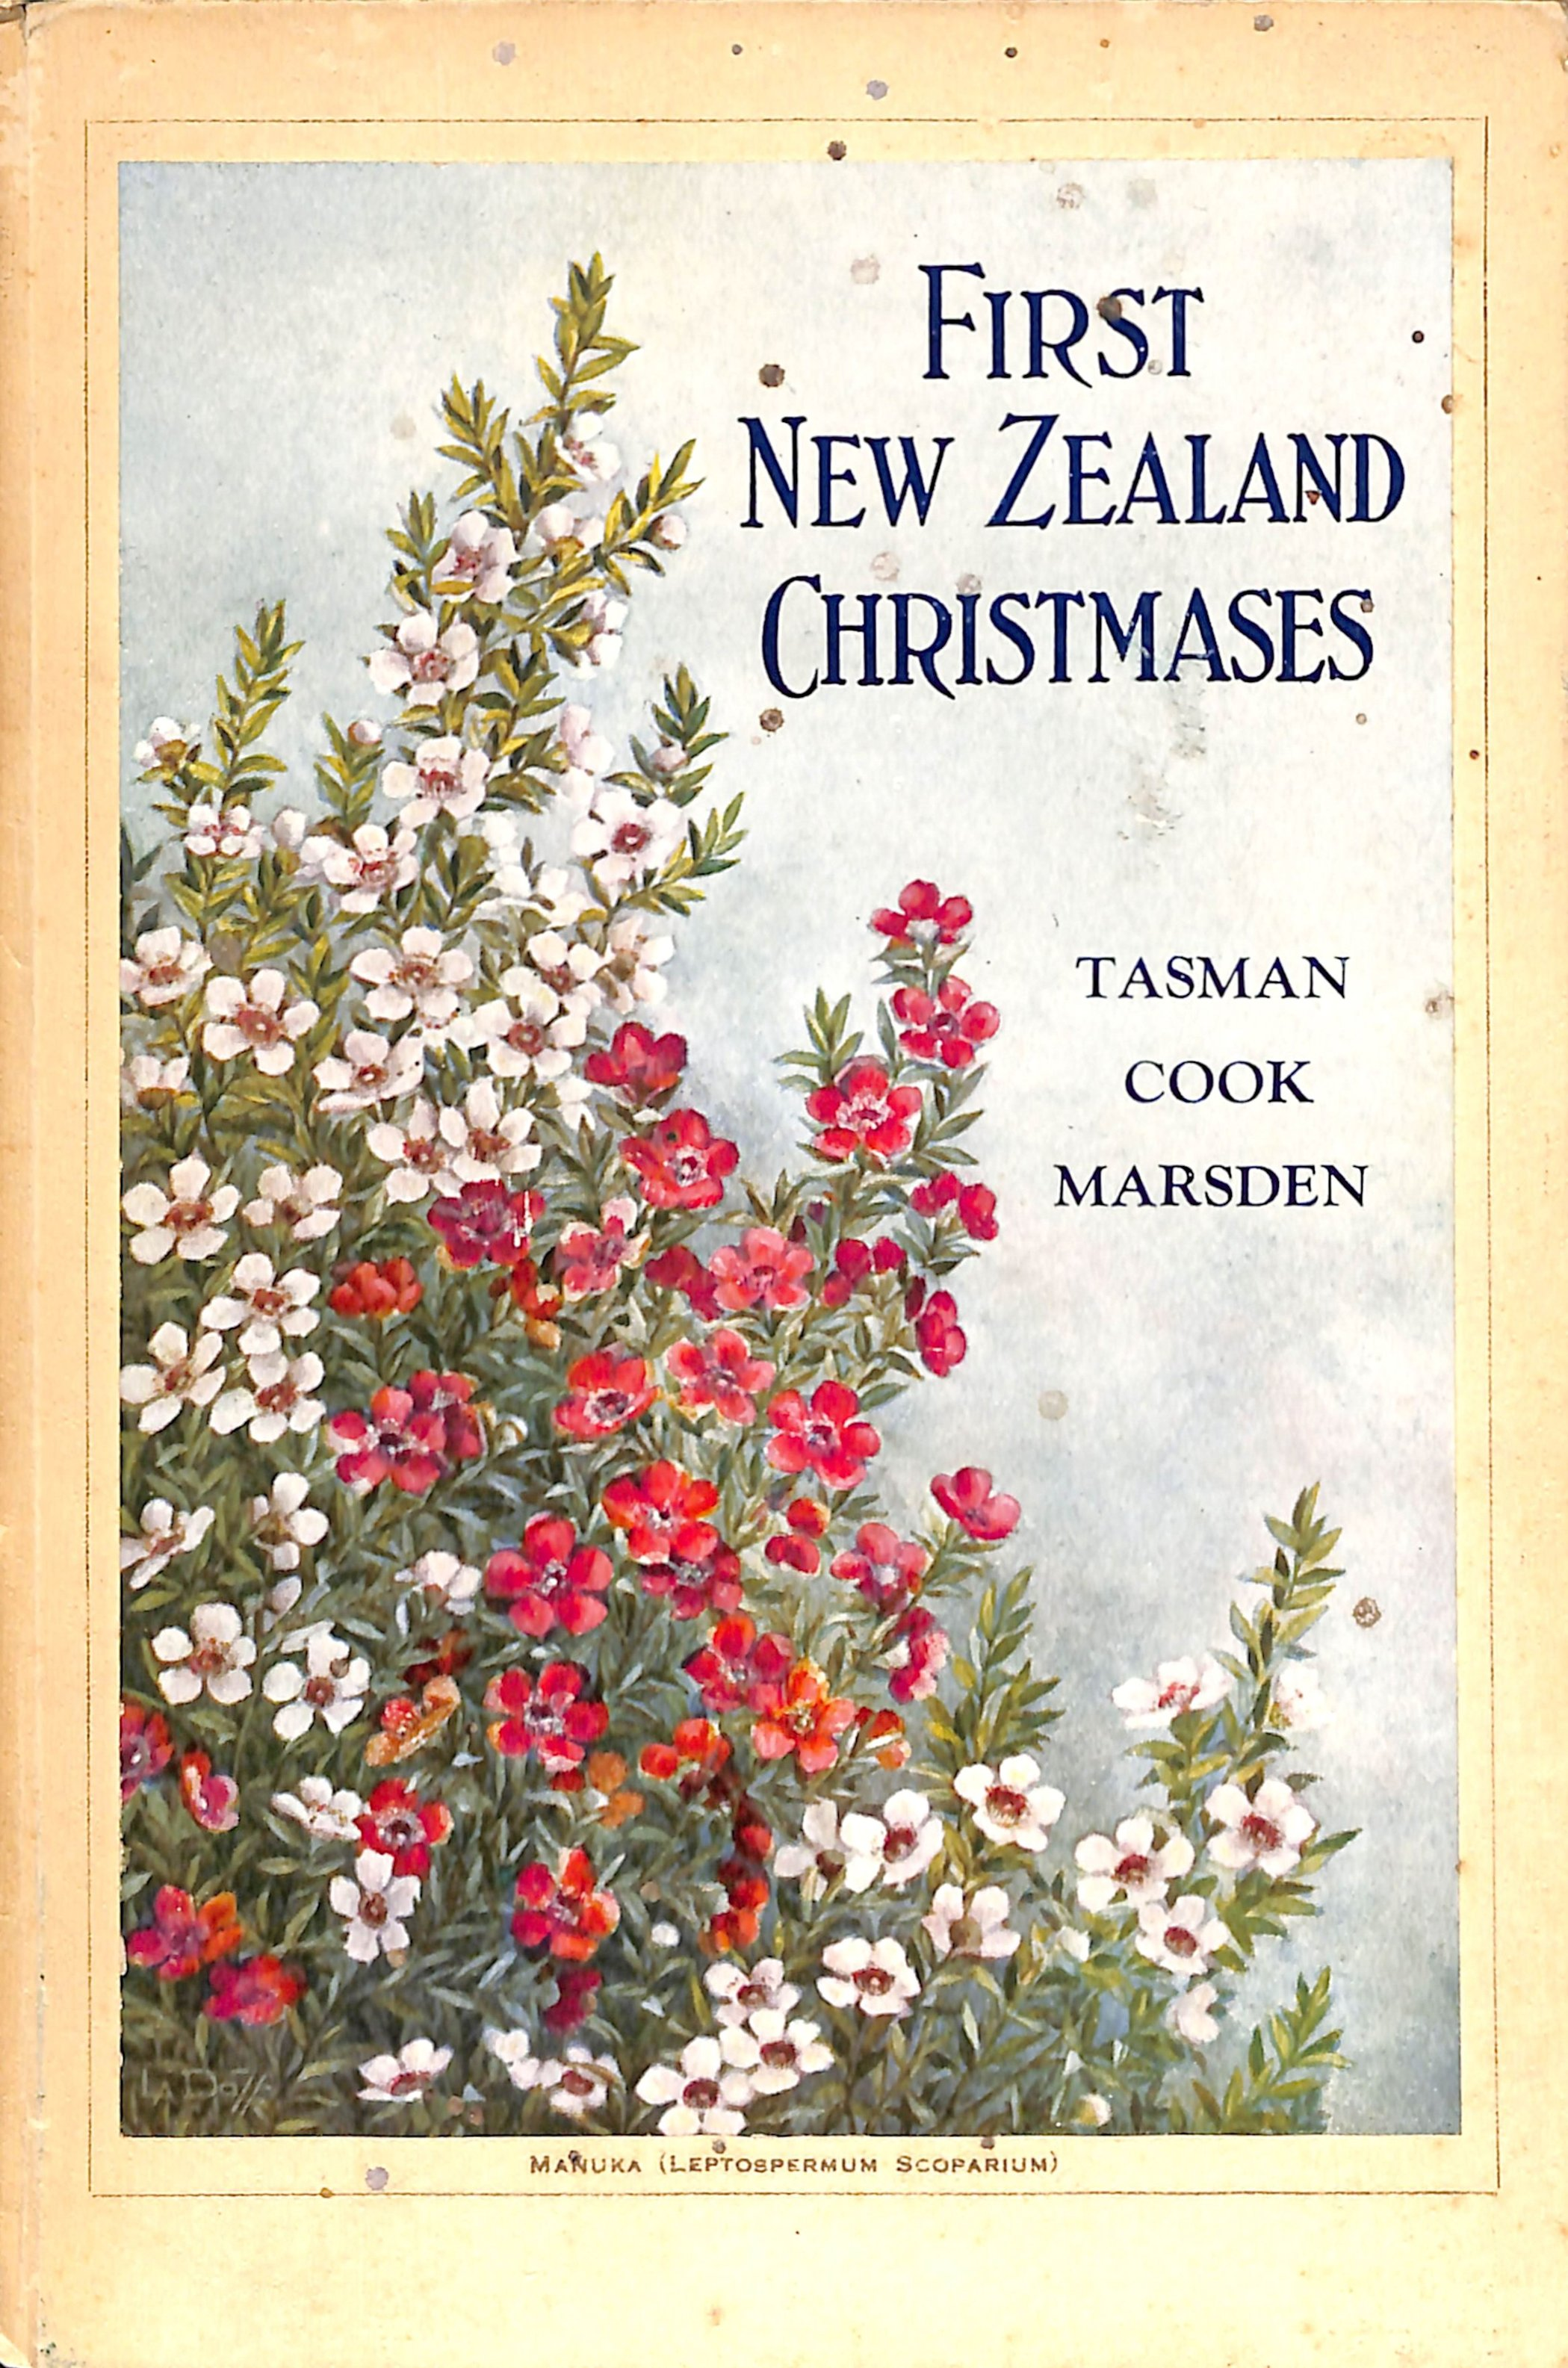 A.H. & A.W. Reed. First New Zealand Christmases. Dunedin: A.H. Reed, 1933.